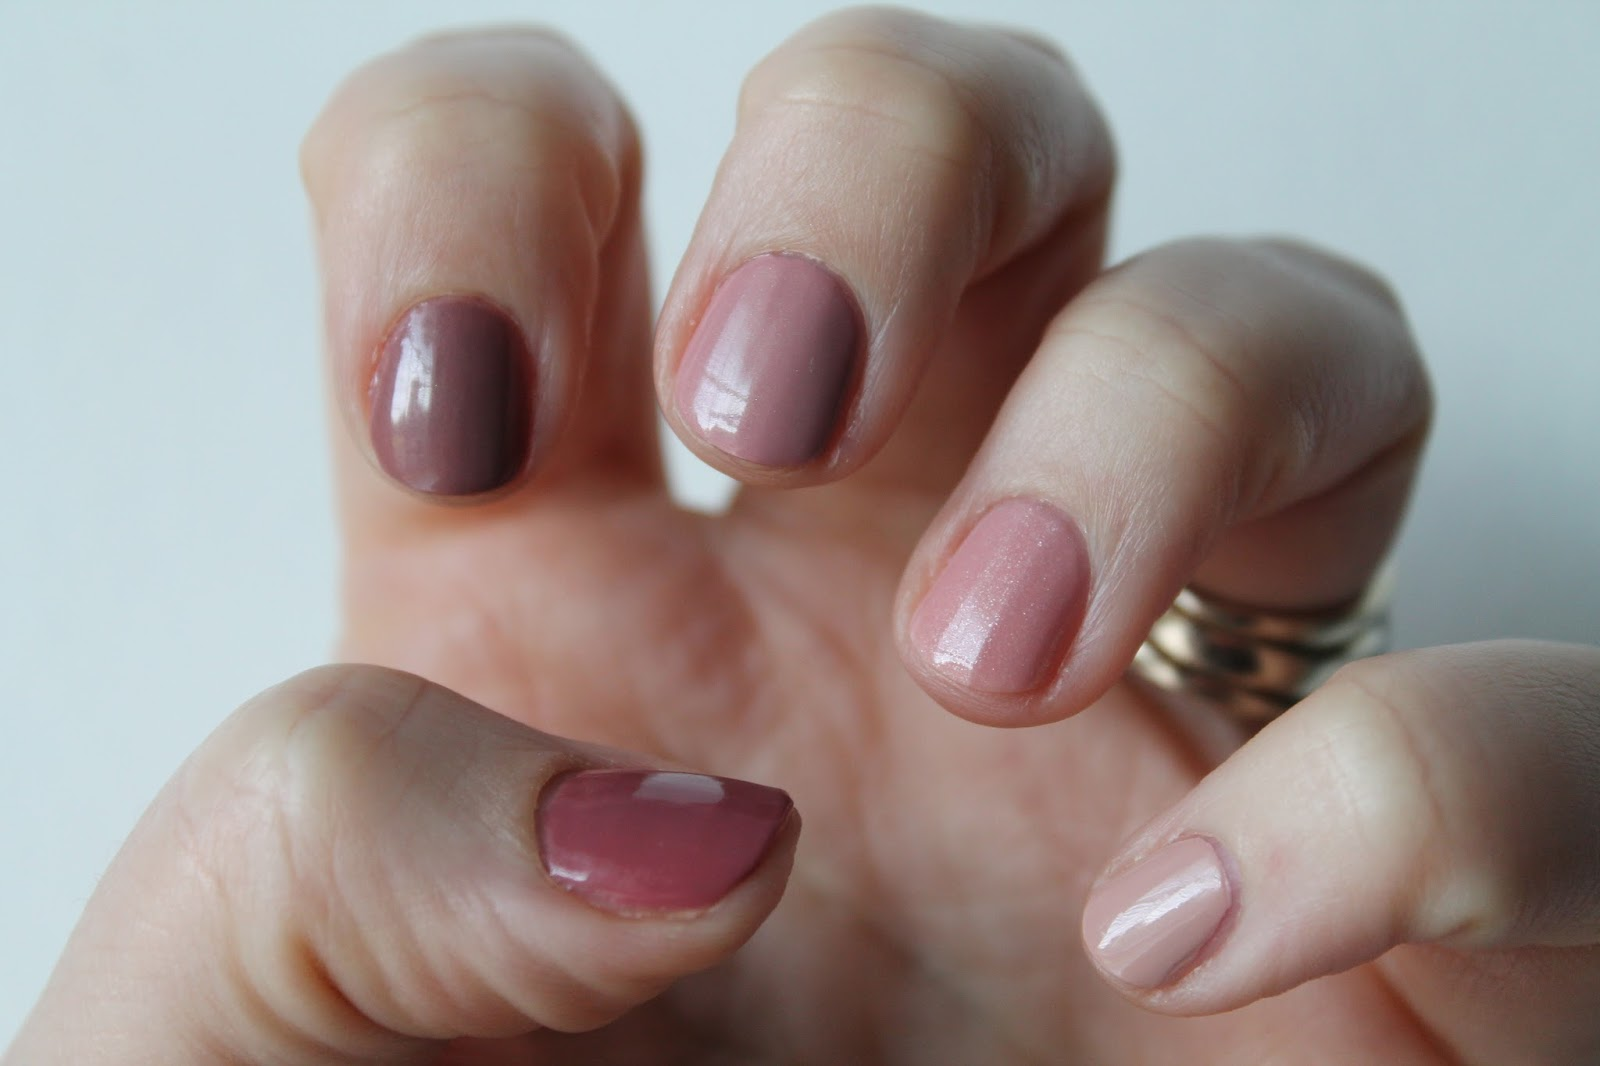 The New Black: Gypsy Rose Ombre - At the Pink of Perfection